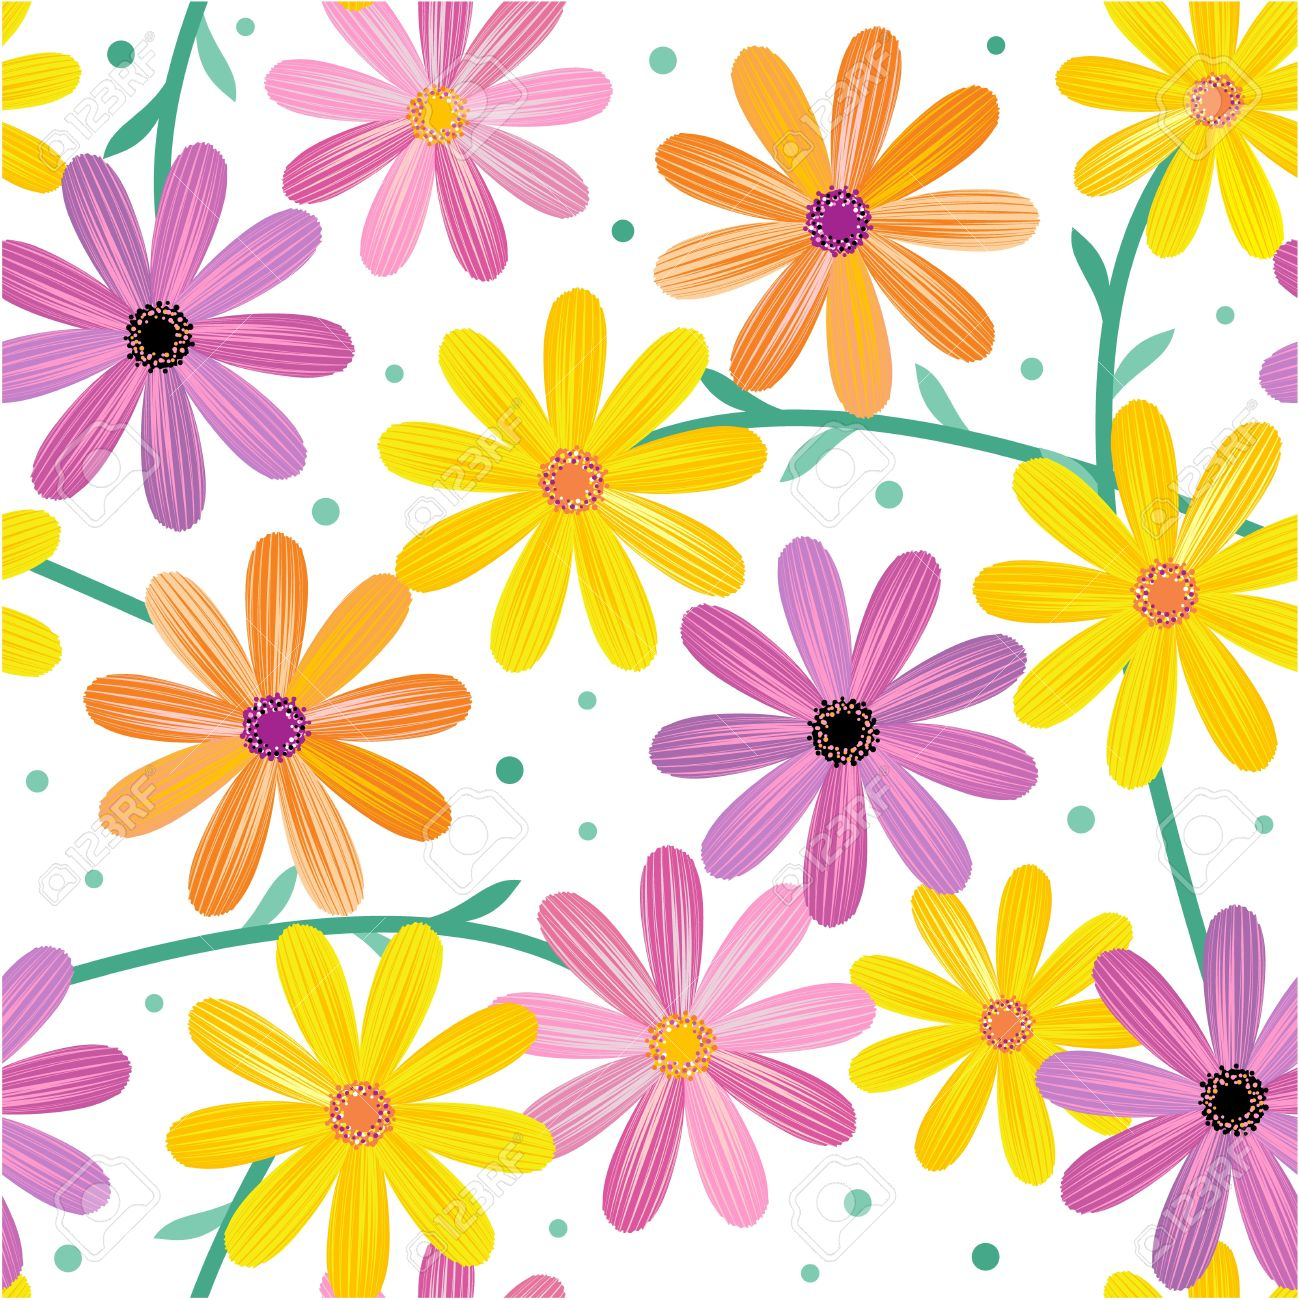 2,367 Gerbera Daisies Stock Illustrations, Cliparts And Royalty ...